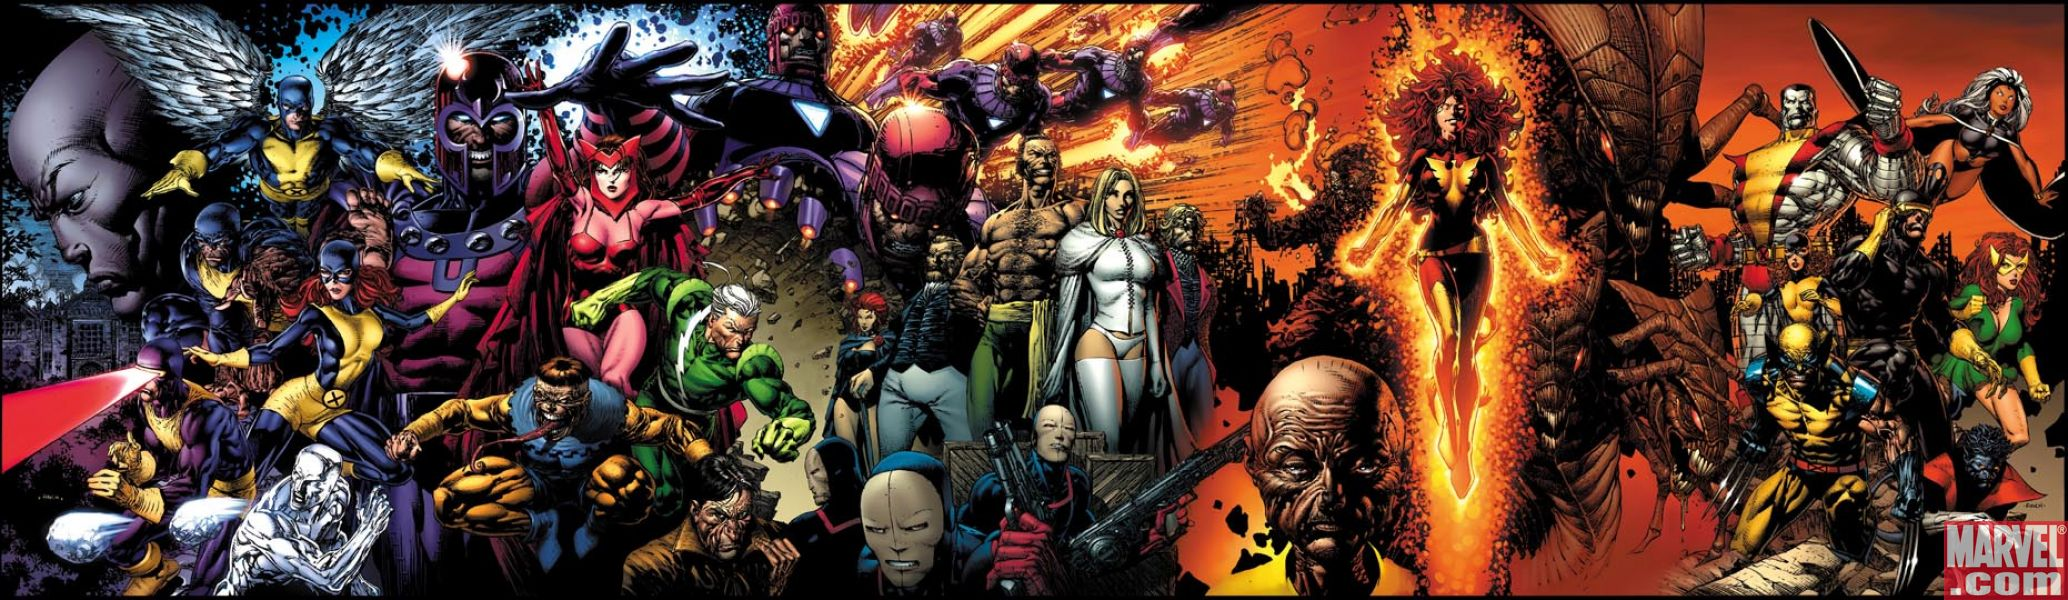 David Finch Brings the X-Men's Legacy To Life X Men Characters